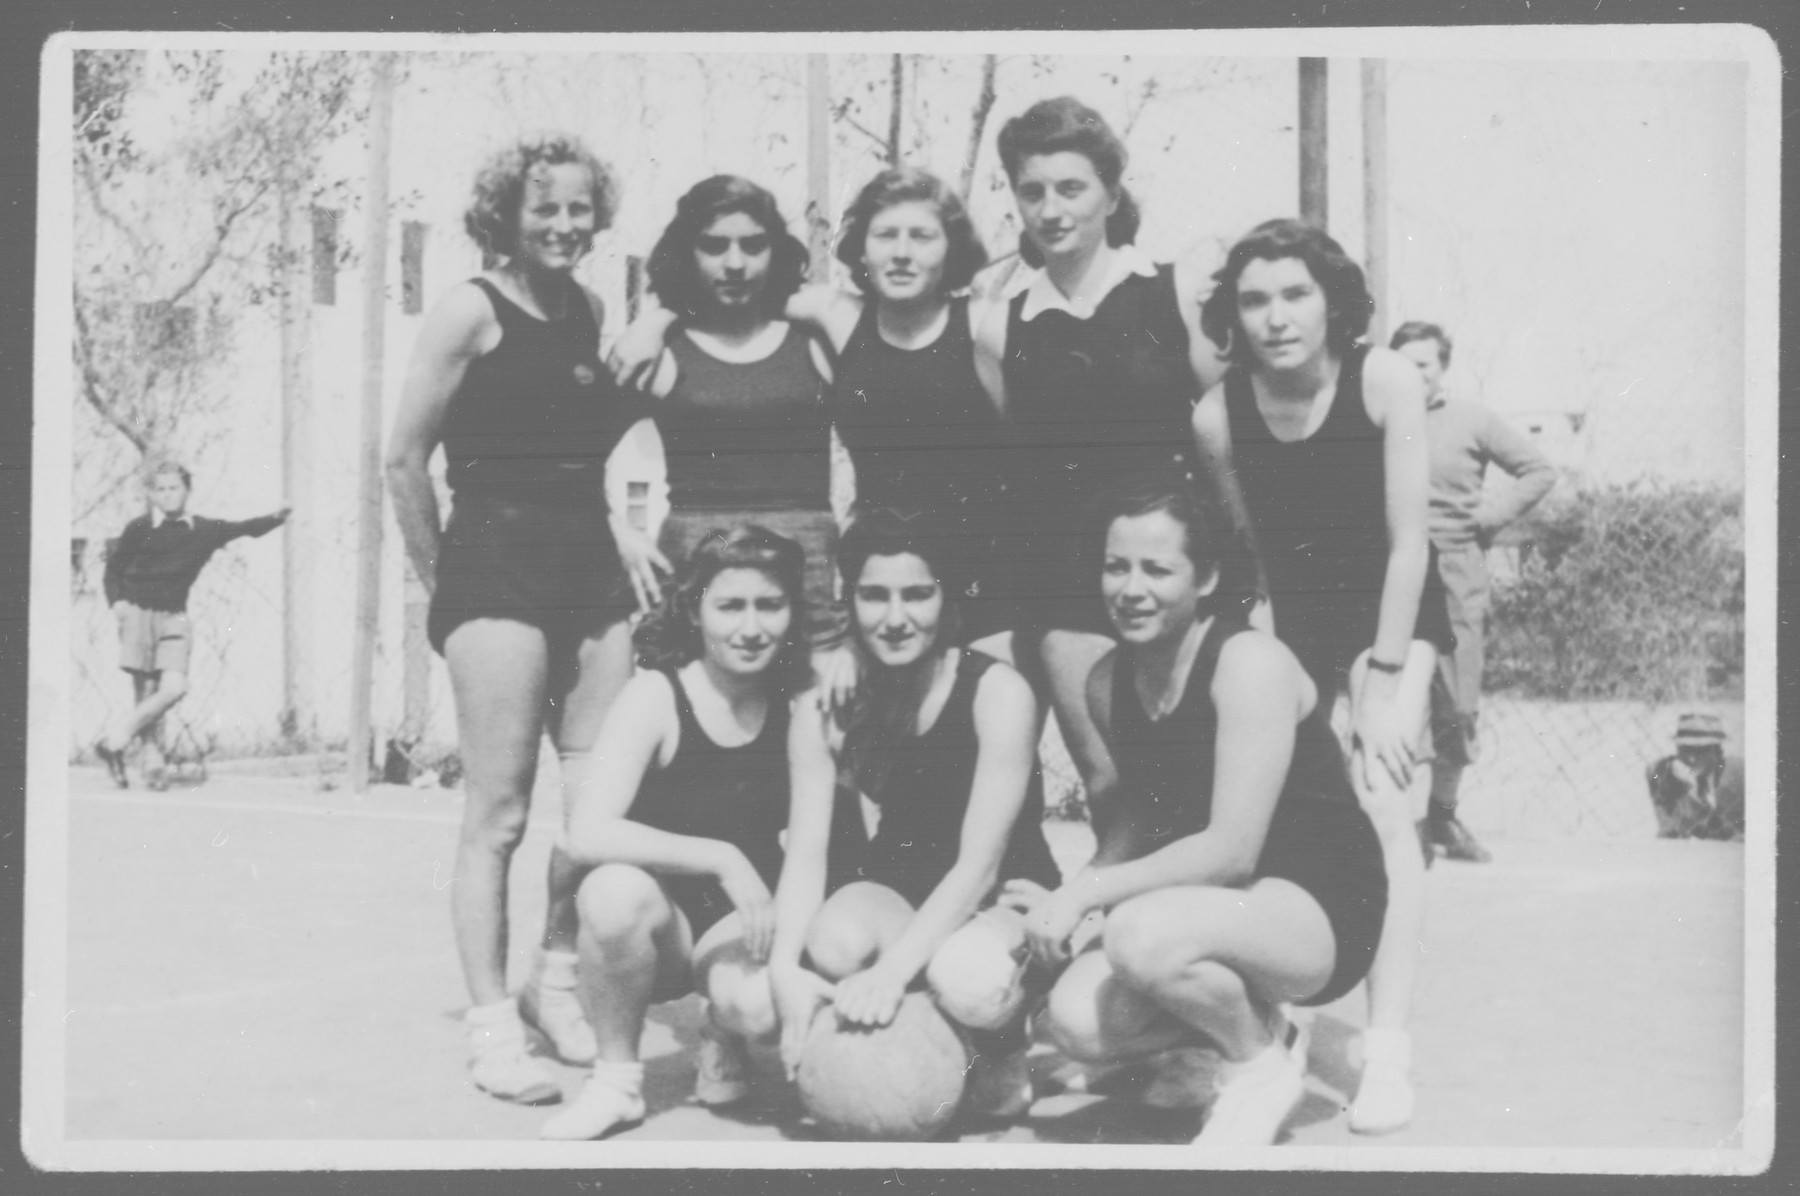 Group portrait of the Palestinian women's basketball team.   Leah Grochowska is standing second from the right.